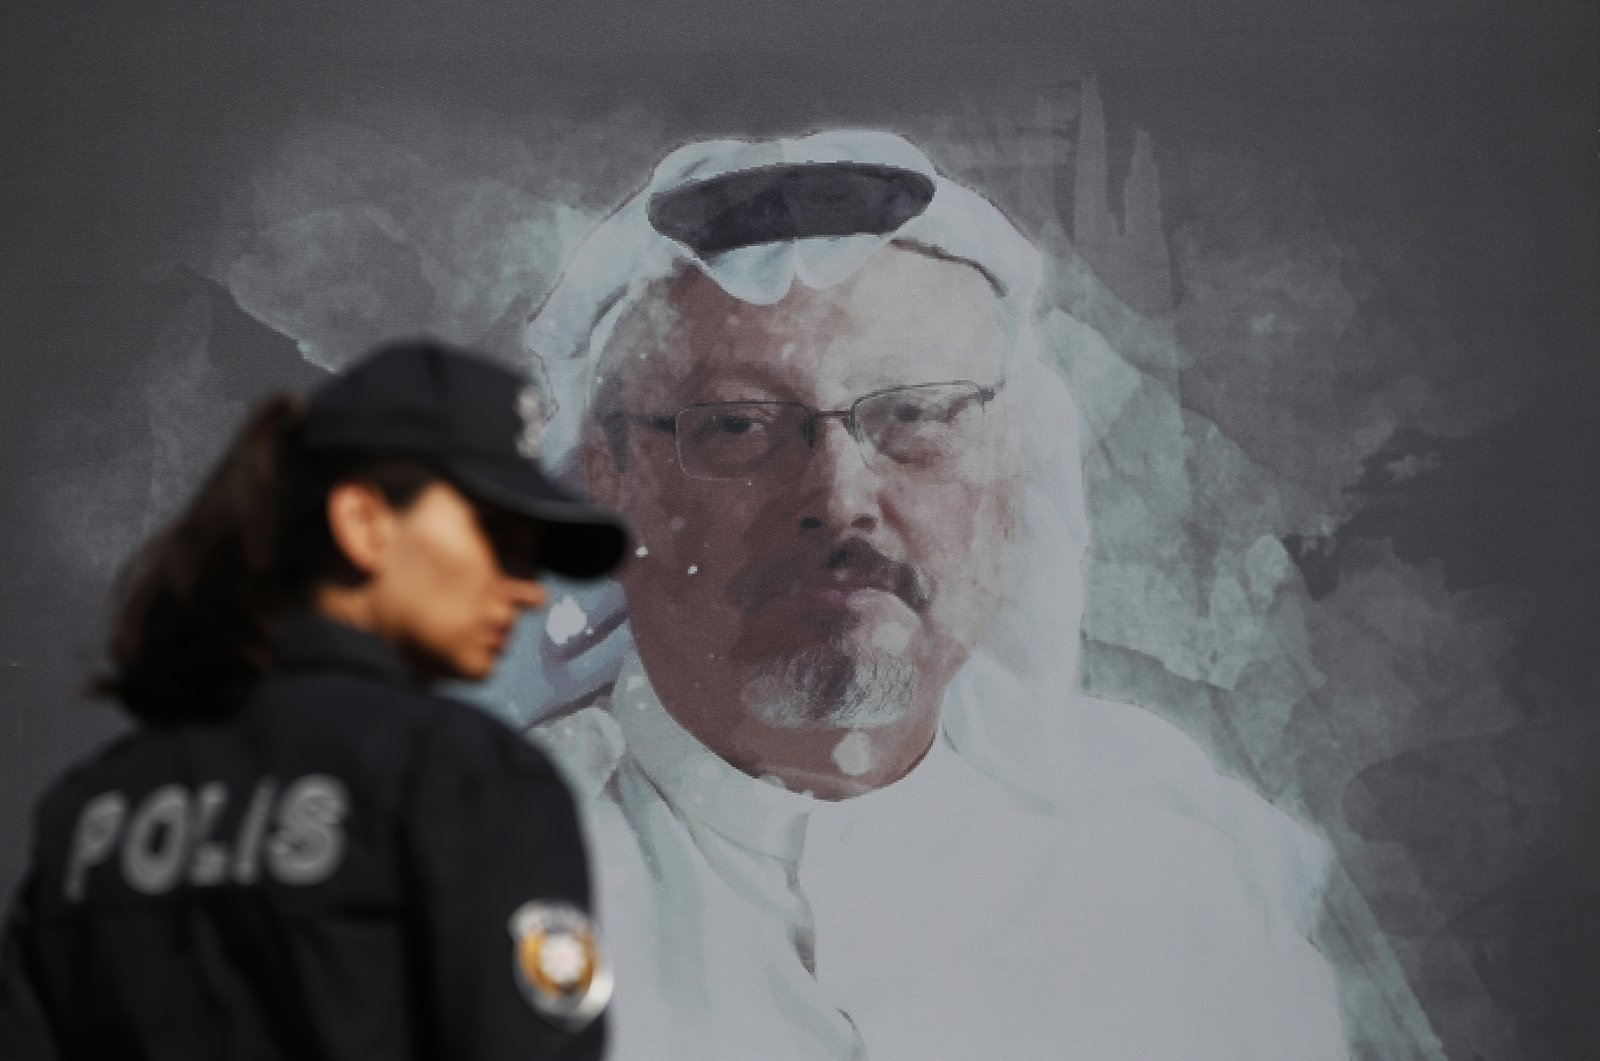 A Turkish police officer walks past a picture of slain Saudi journalist Jamal Khashoggi prior to a ceremony, near the Saudi Arabia consulate in Istanbul, marking the one-year anniversary of his death, Wednesday, Oct. 2, 2019. (AP Photo)